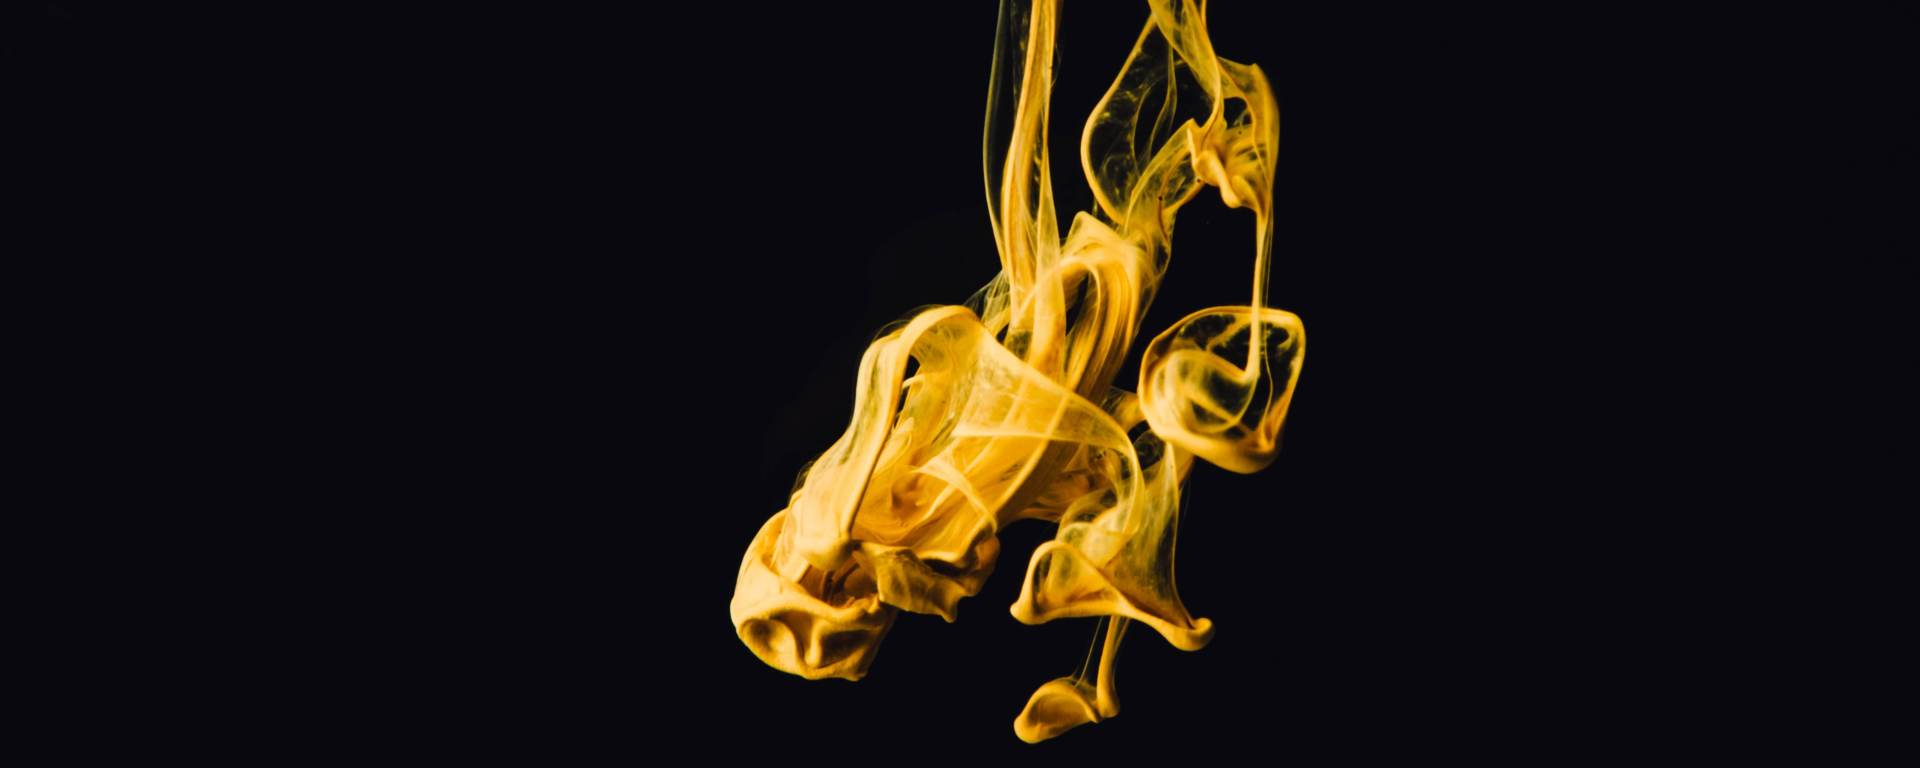 A spool of gold color against a black backdrop